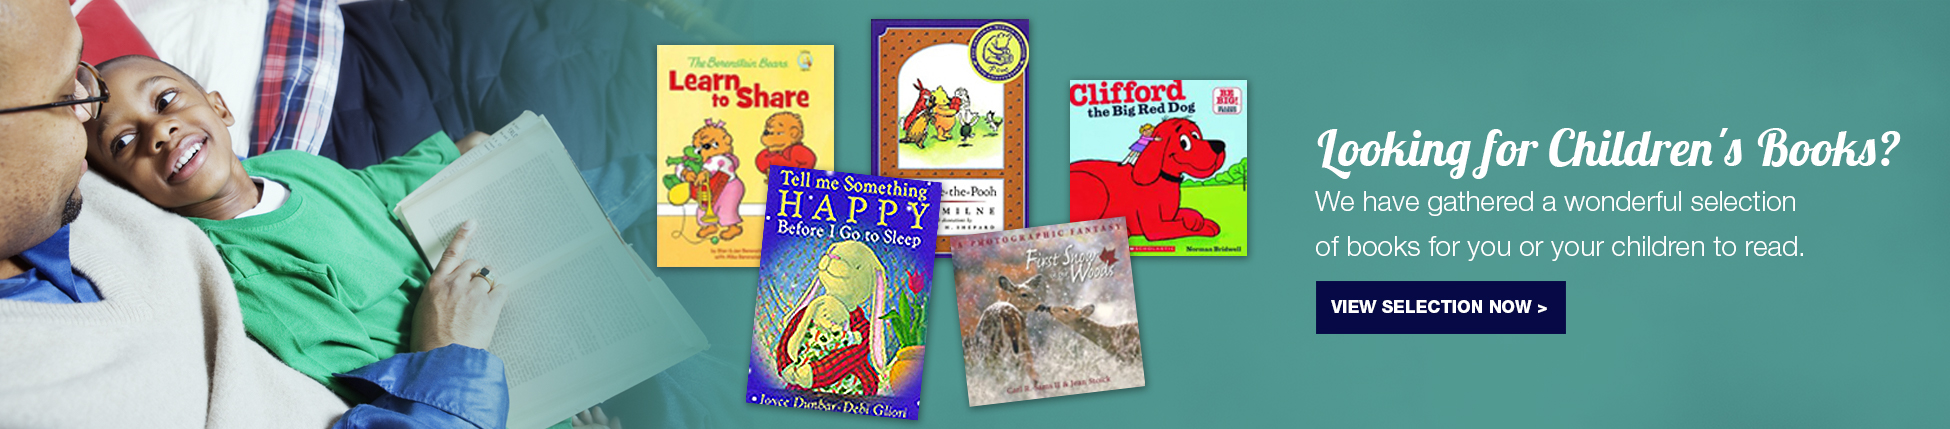 Looking for Children's Books